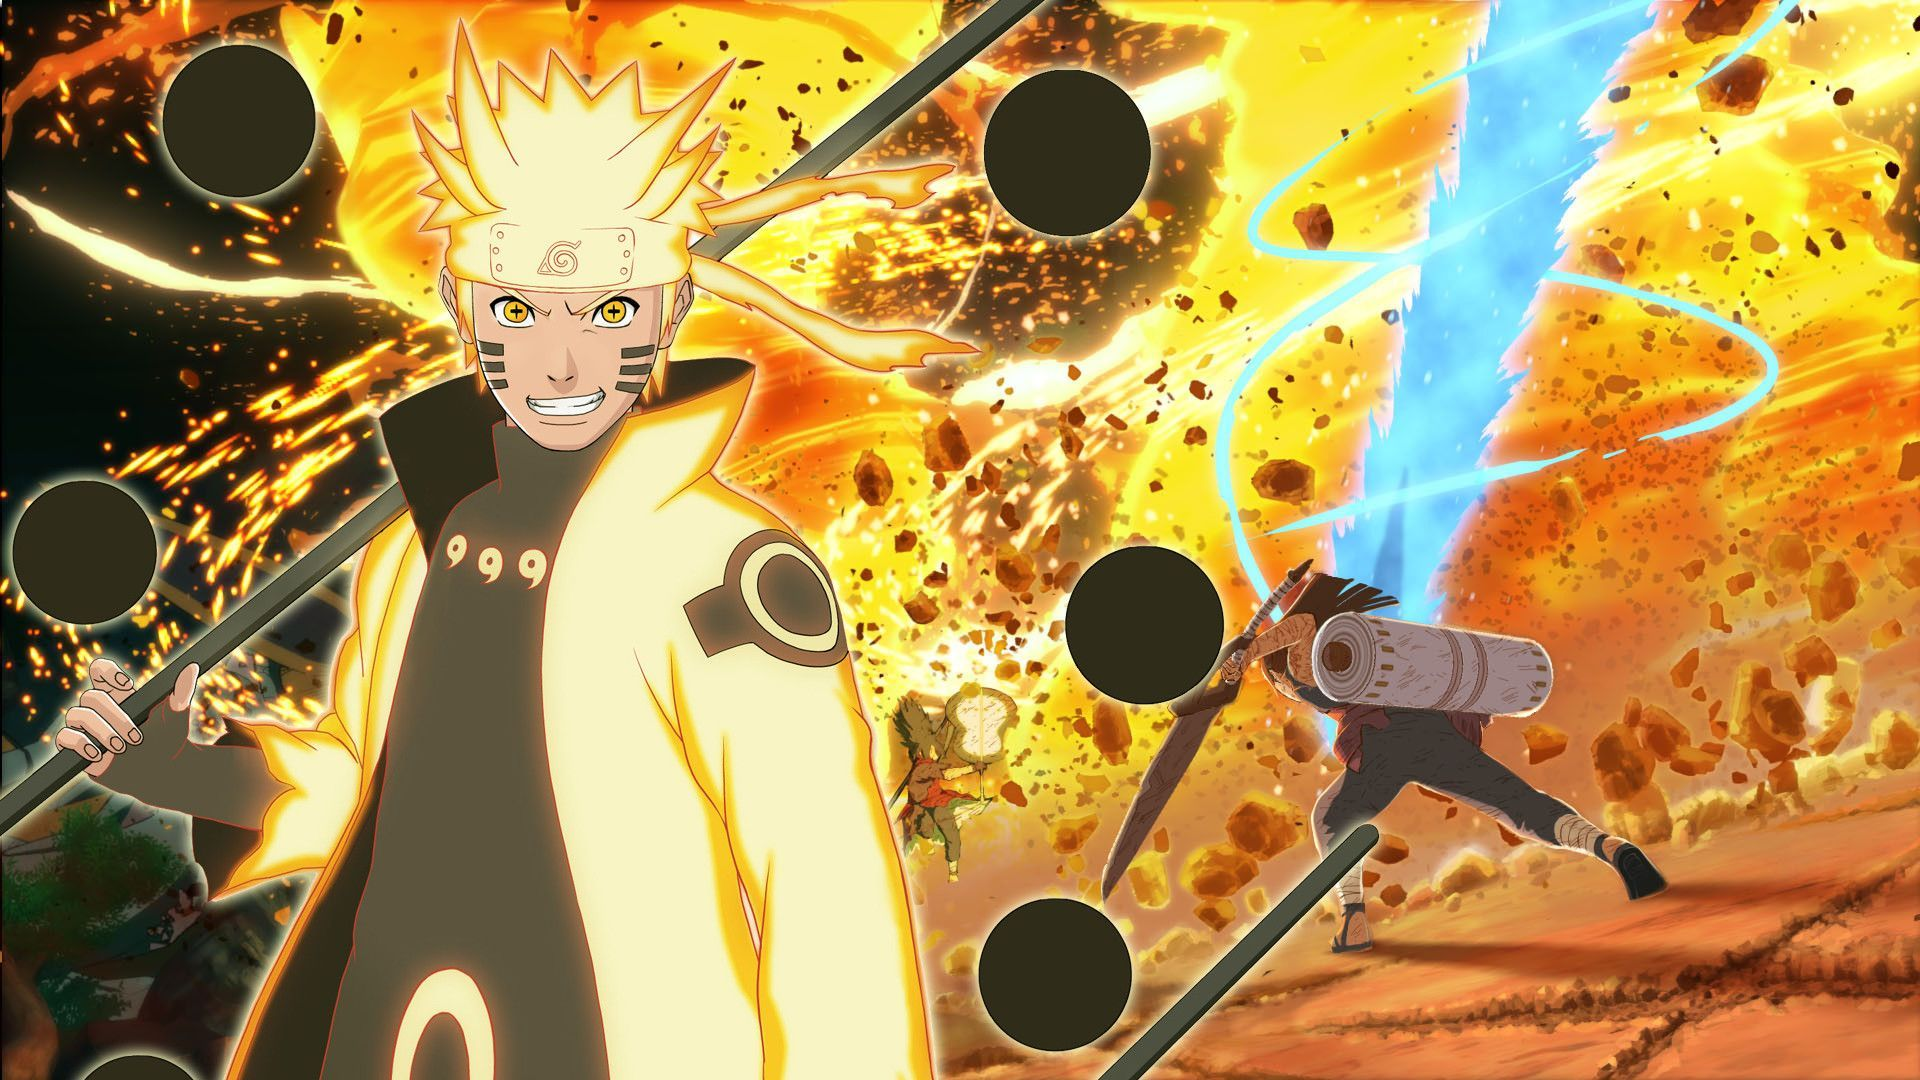 Naruto Shippuden 4K Wallpapers - Top Free Naruto Shippuden ...